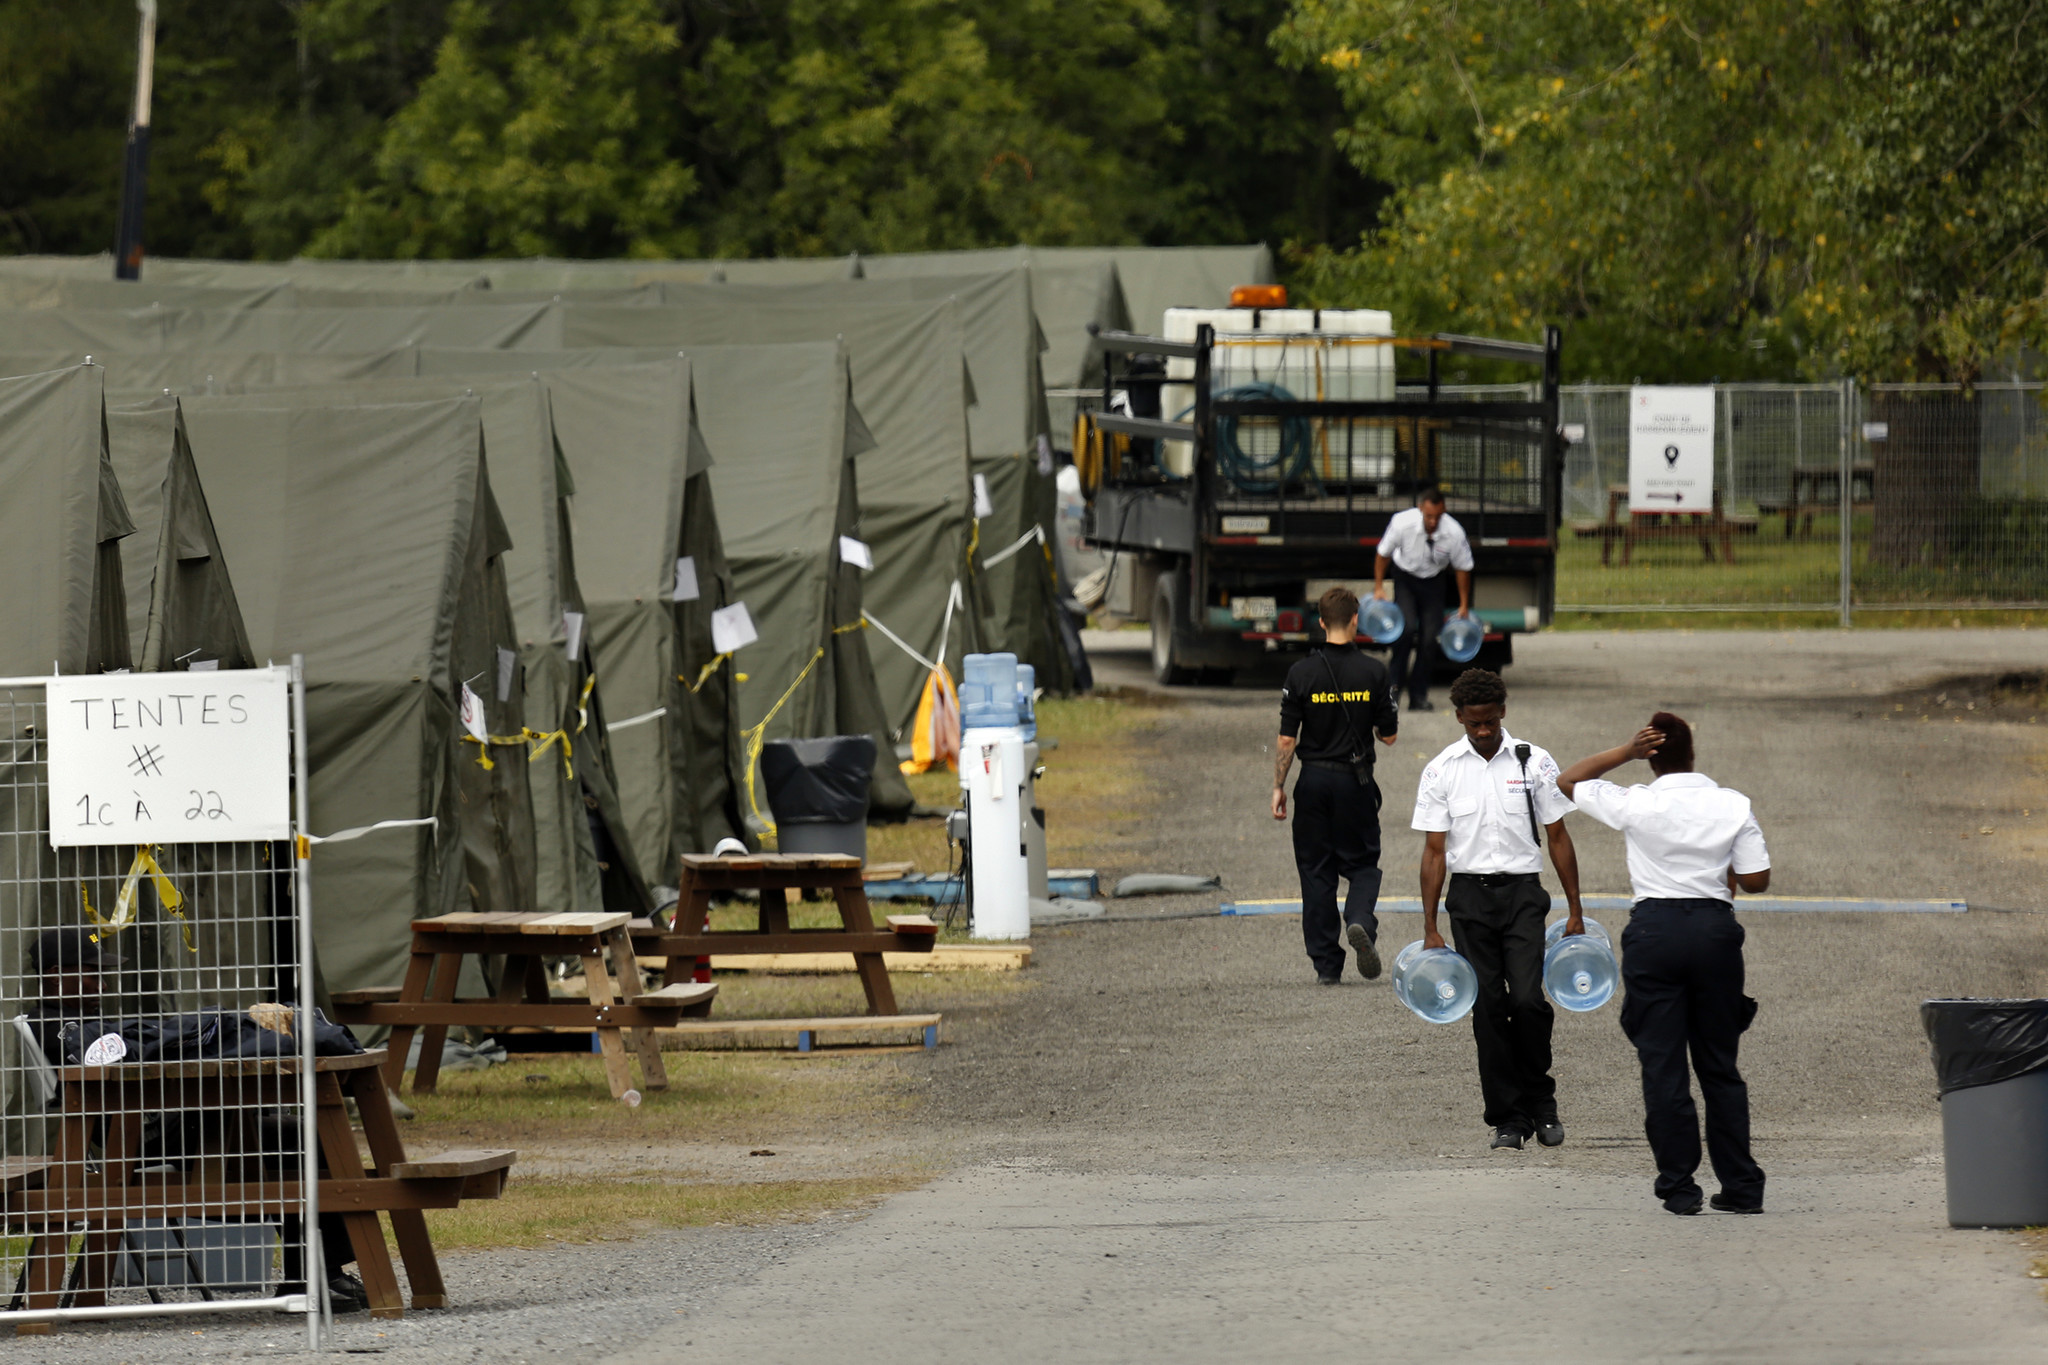 Members of the Canadian armed forces set up a tent village to house migrants while they wait to file asylum applications at the official port of entry in St. Bernard de Lacolle.